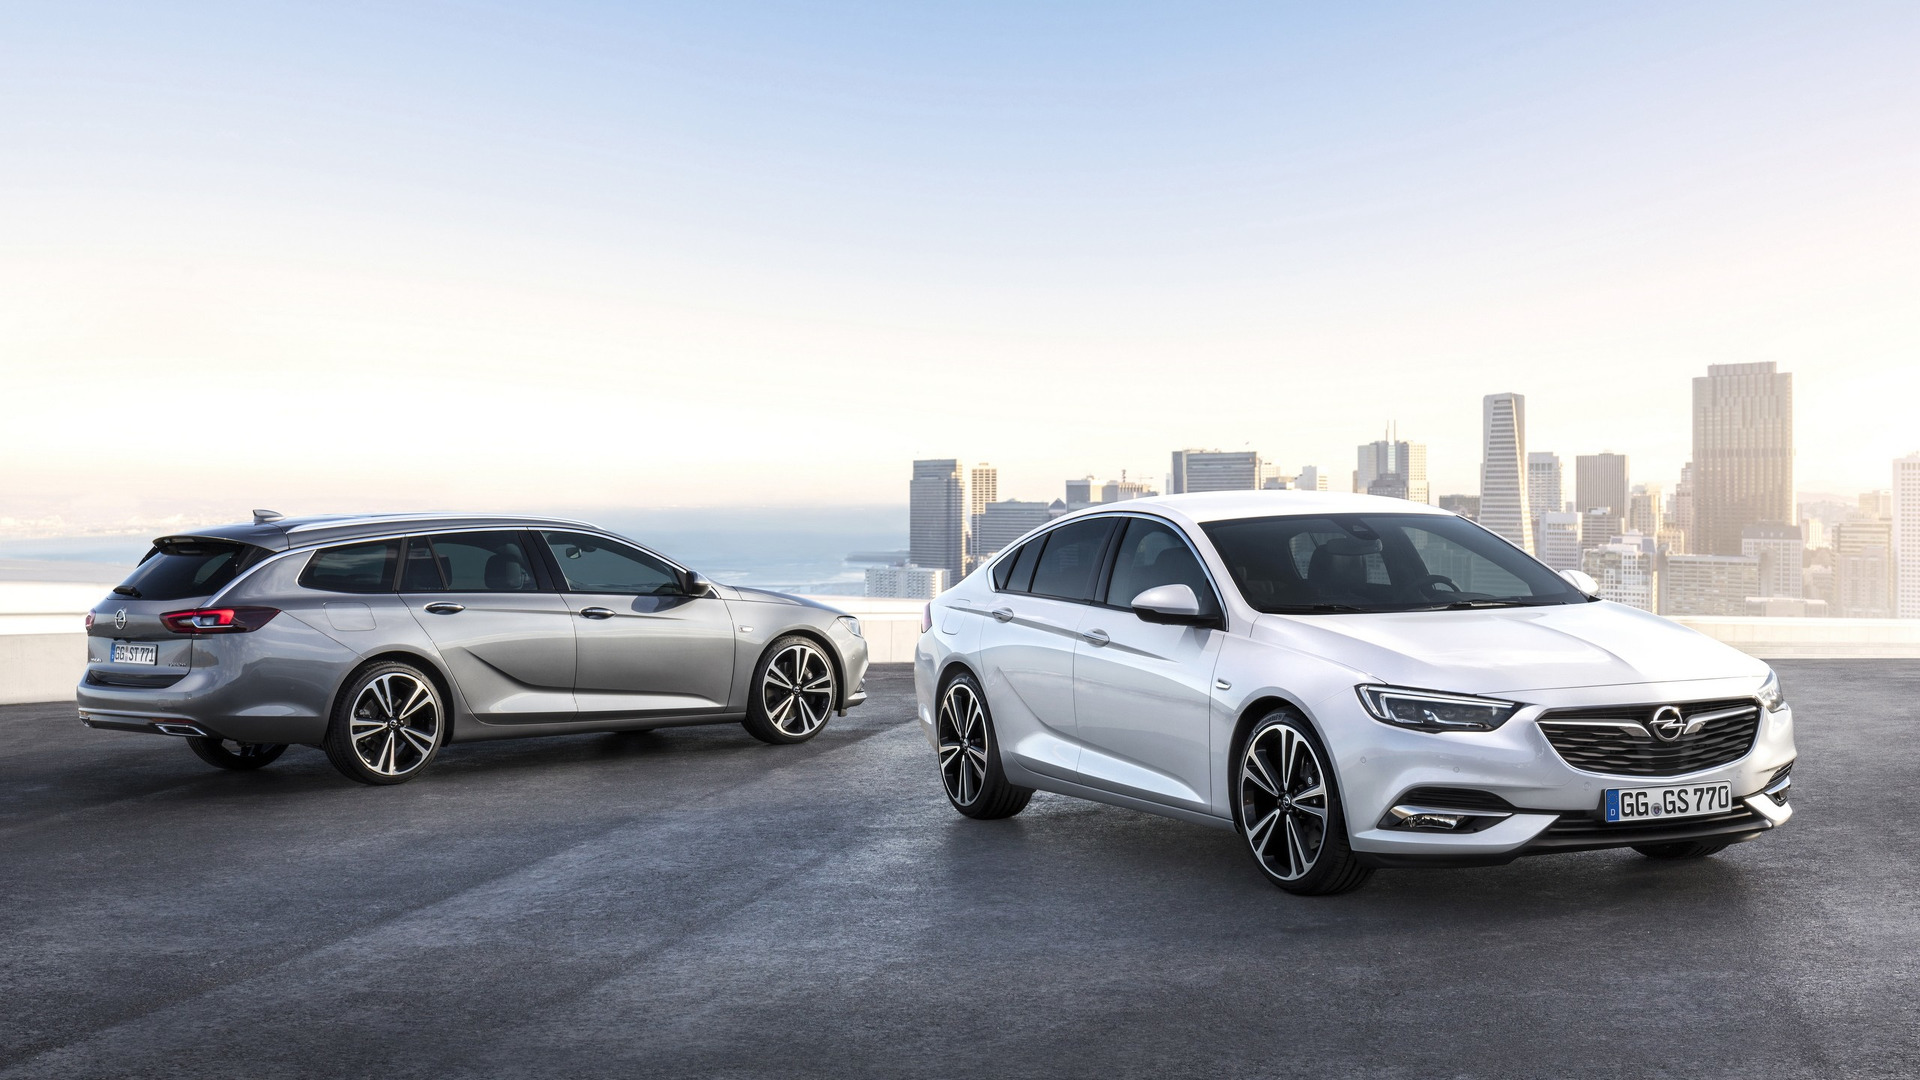 opel pops 197-horsepower gasoline engine into updated insignia